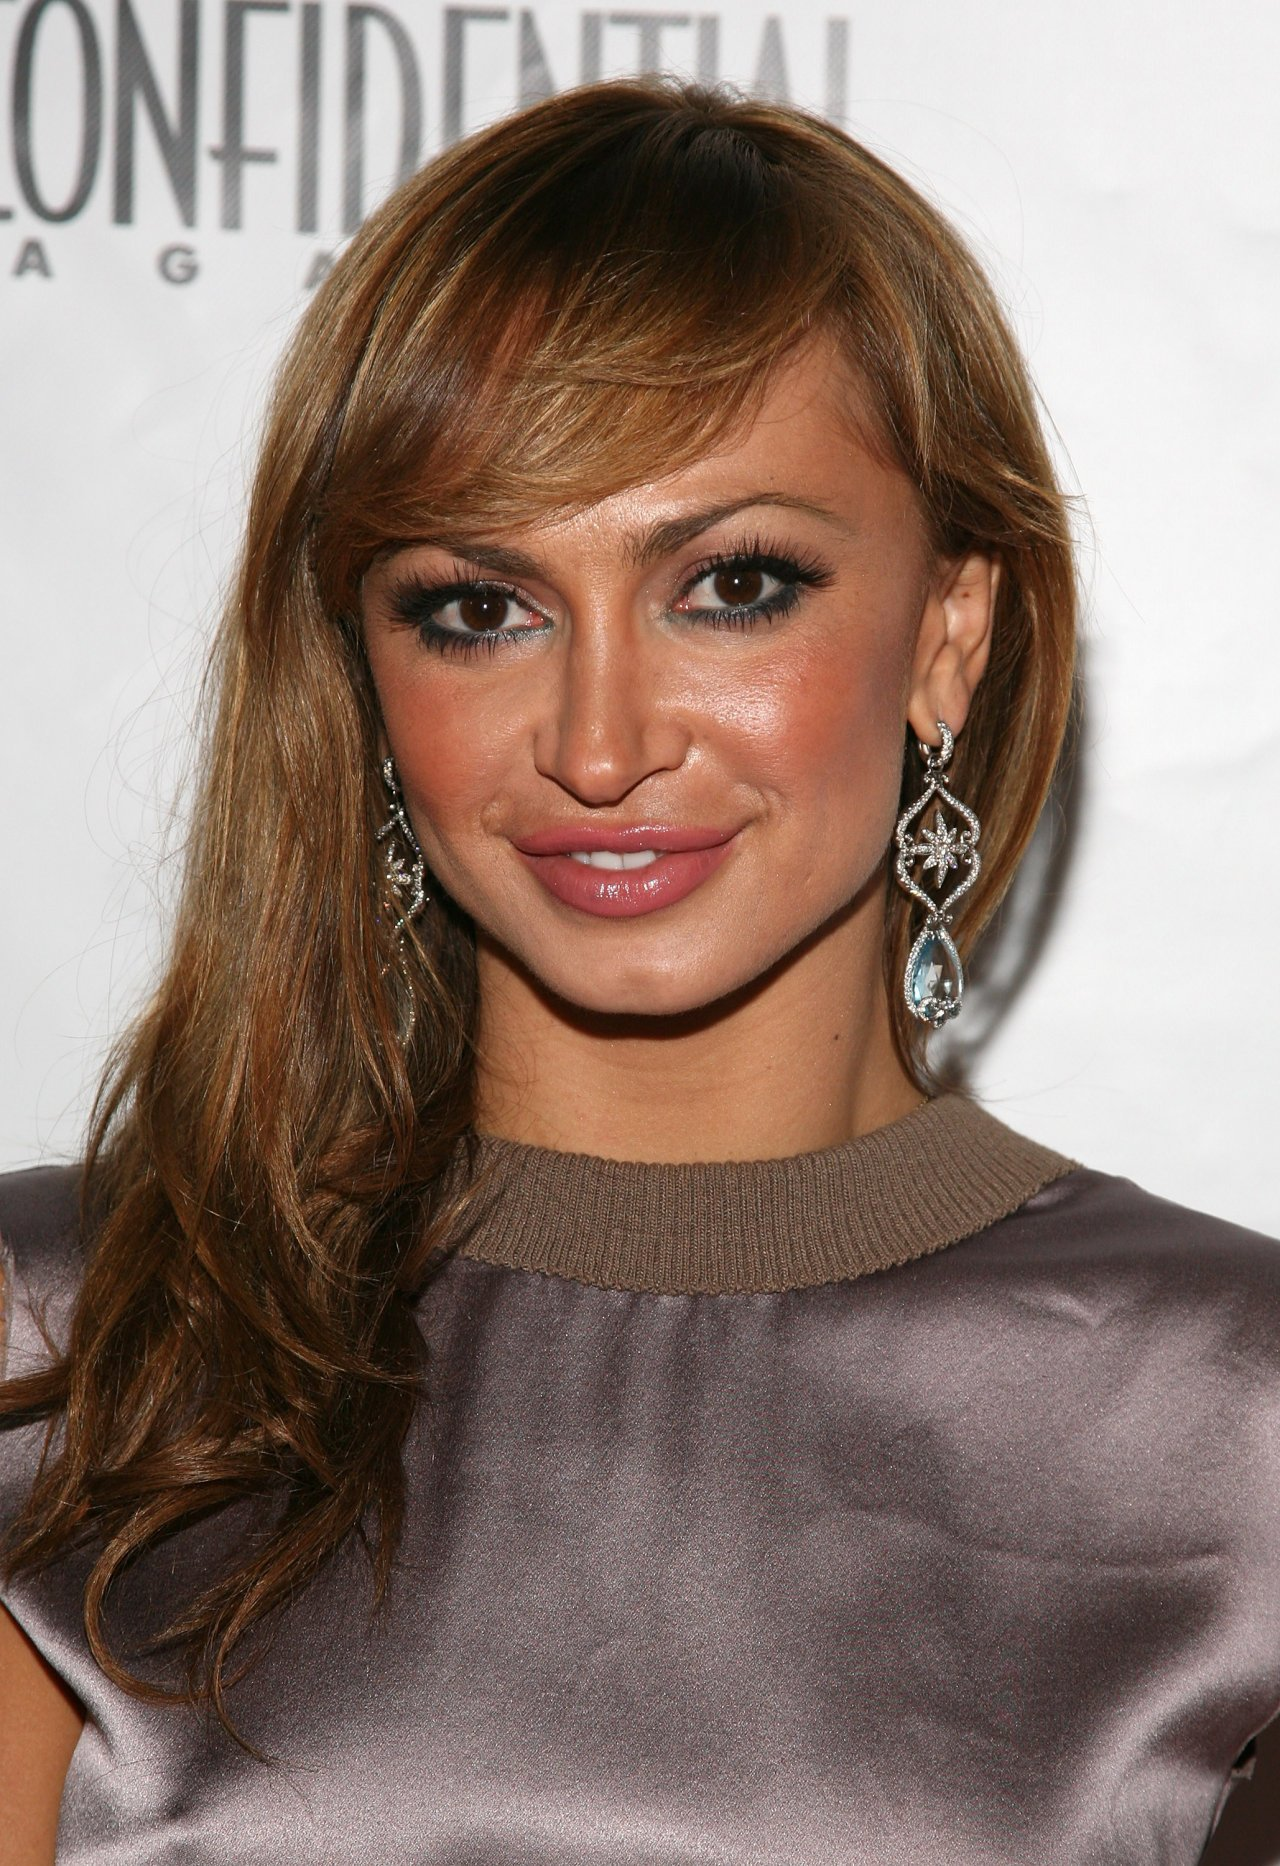 who is karina smirnoff dating now